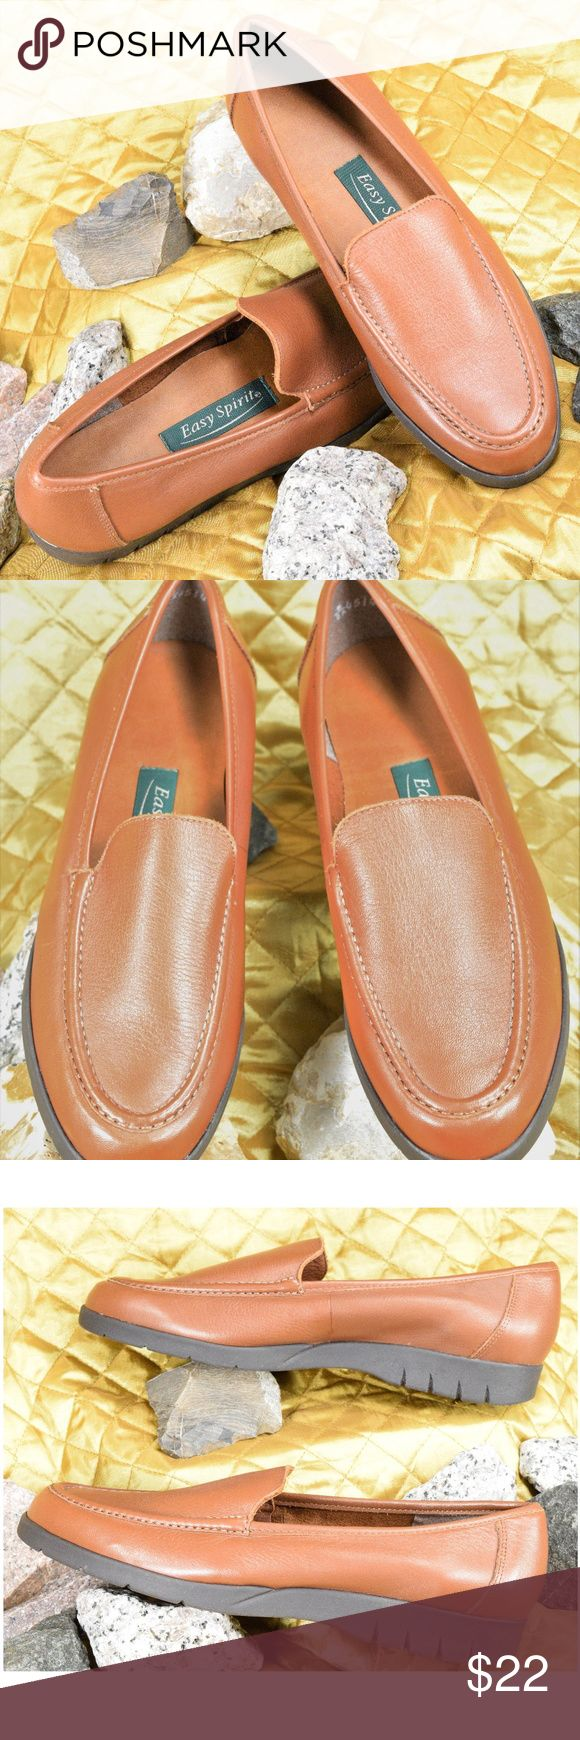 NEW Easy Spirit Brown Leather Loafers Size 7 Women's beautiful brown leather loafers by Easy Spirit - New without box!  **If you appreciate old school quality - you're in the right place. We ship FAST, usually within 1 business day! Thanks for Poshing in my Closet! 🙂😘 Easy Spirit Shoes Flats & Loafers